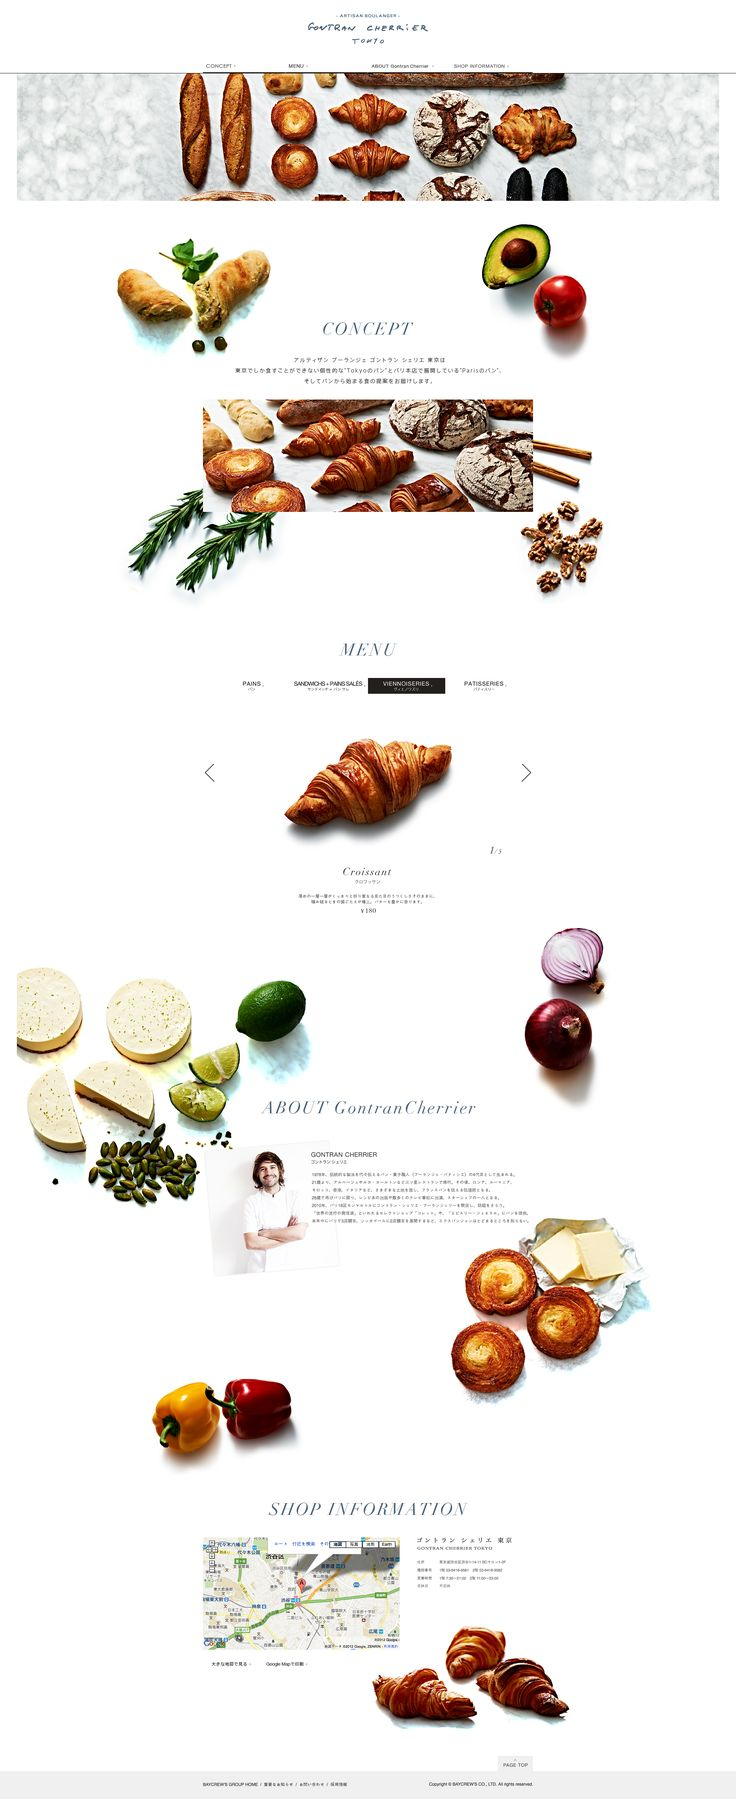 gontran-cherrier.jp | webdesign shop food I absolutely love this unique and beautiful interactive web design for a food shop!